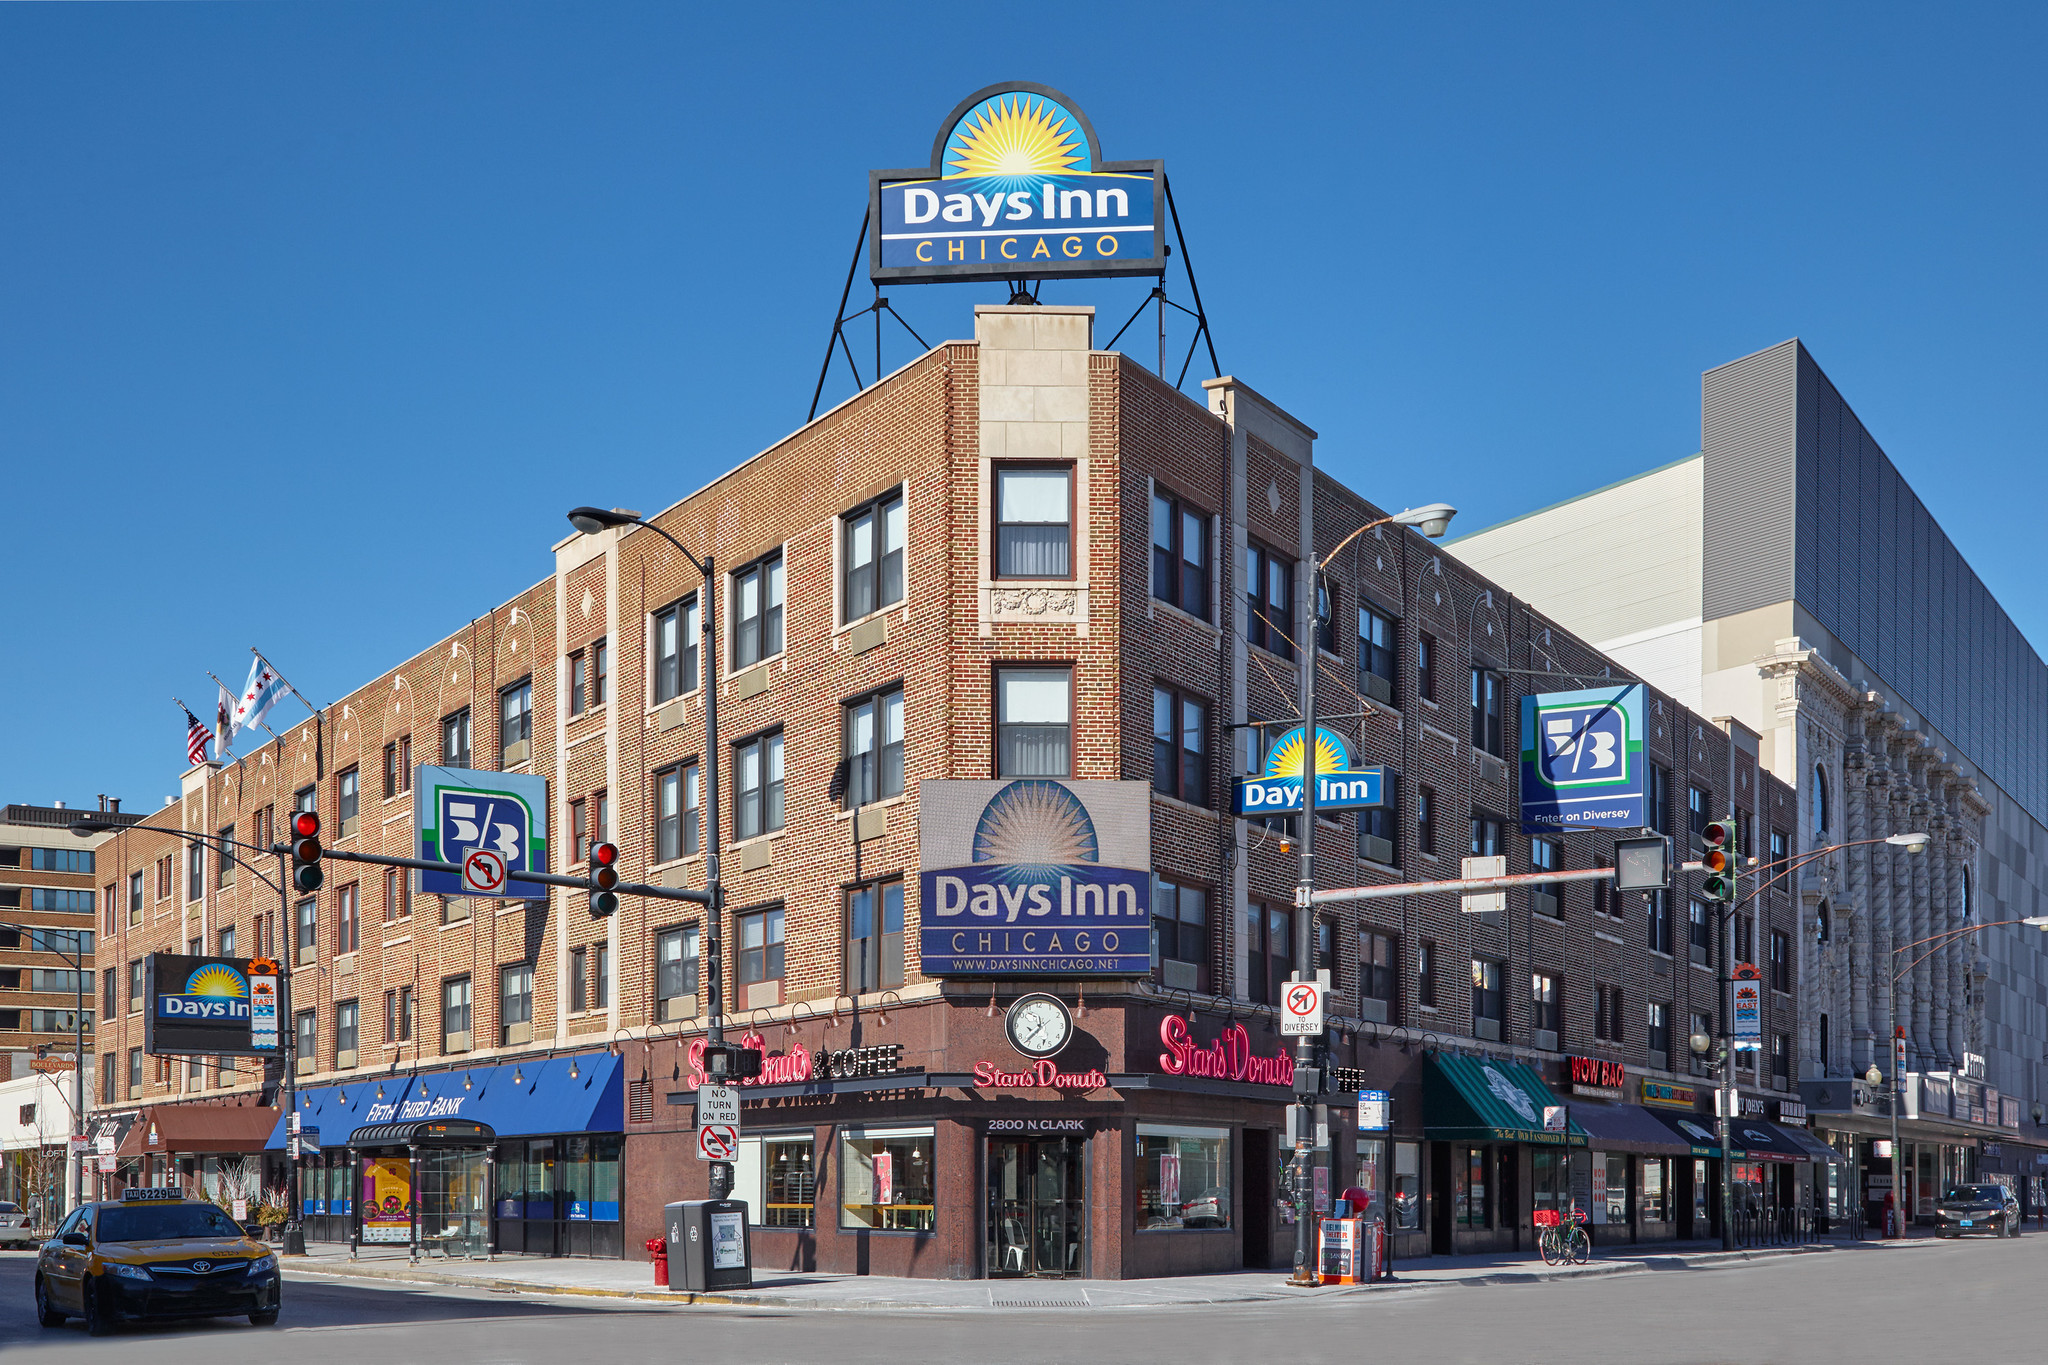 Chicago 39 s 39 rock and roll days inn 39 to become lifestyle for Hotel chicago hotel